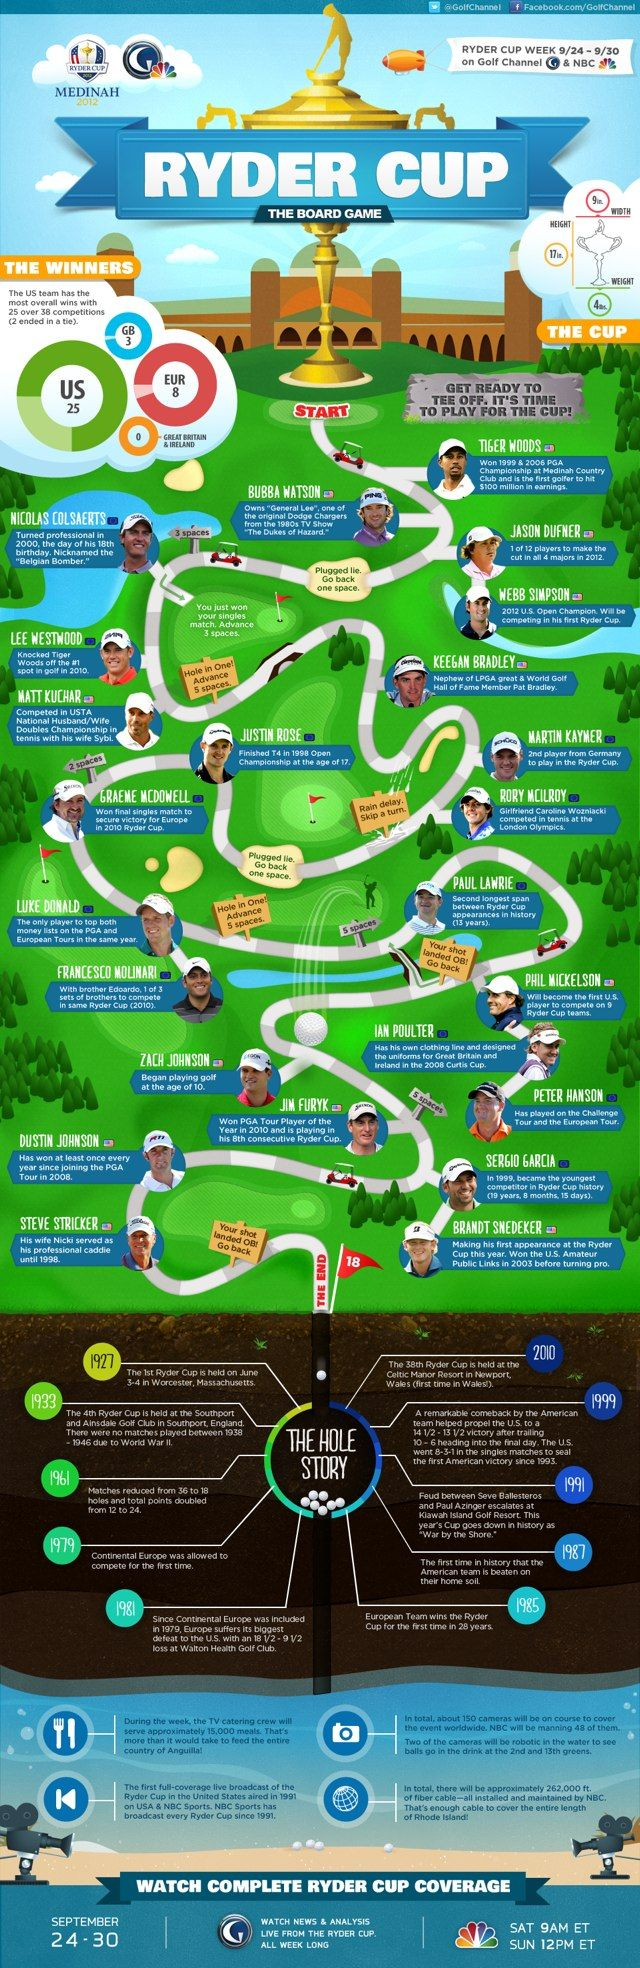 Another Ryder Cup Infographic